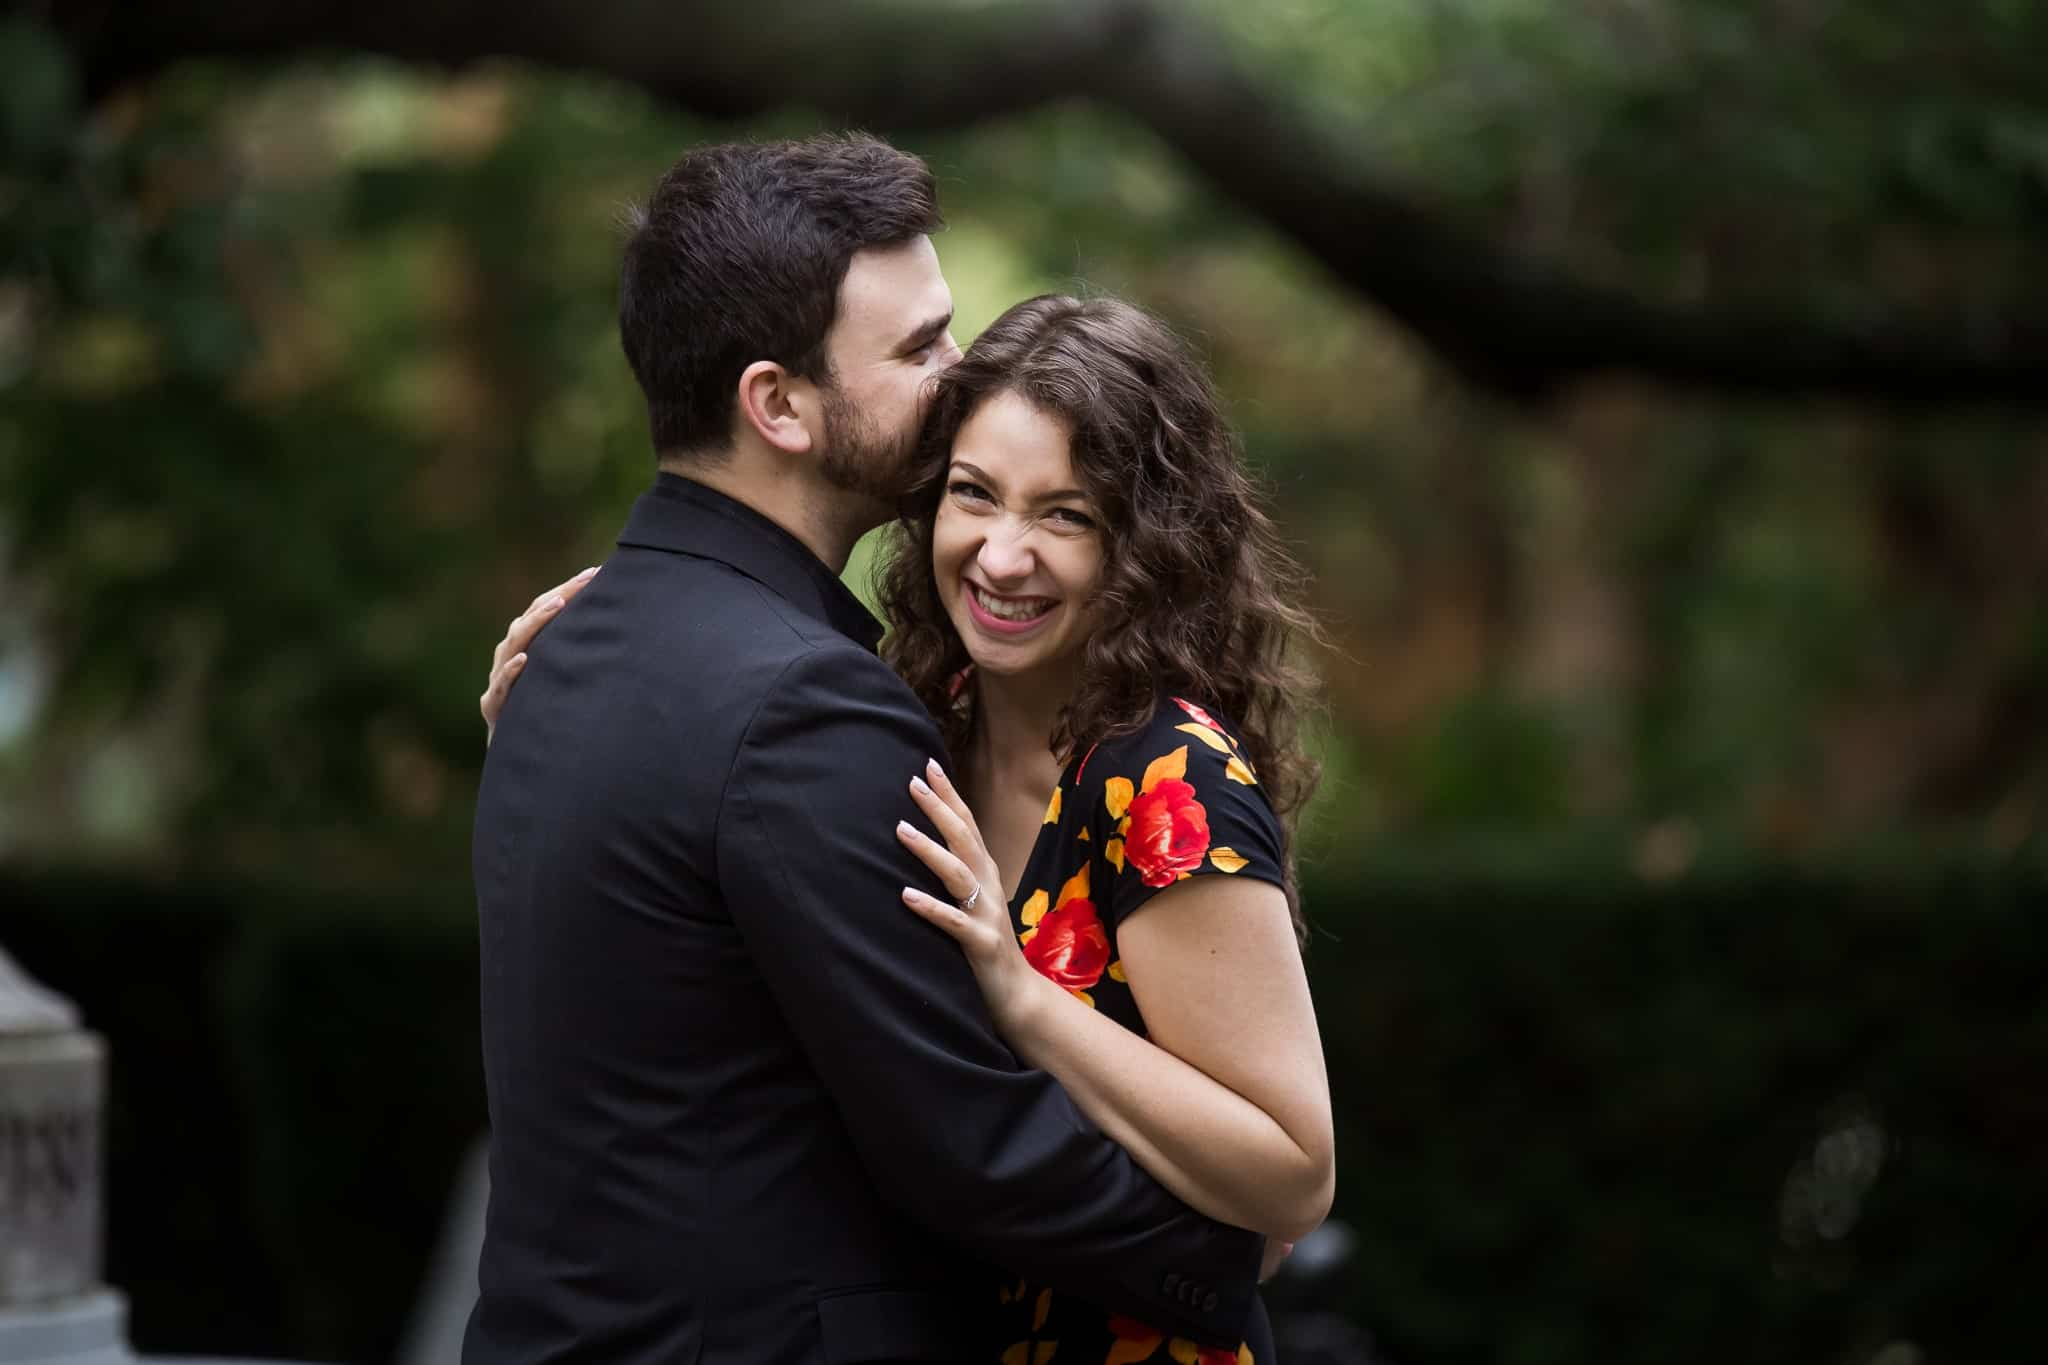 couple hugging and woman laughing